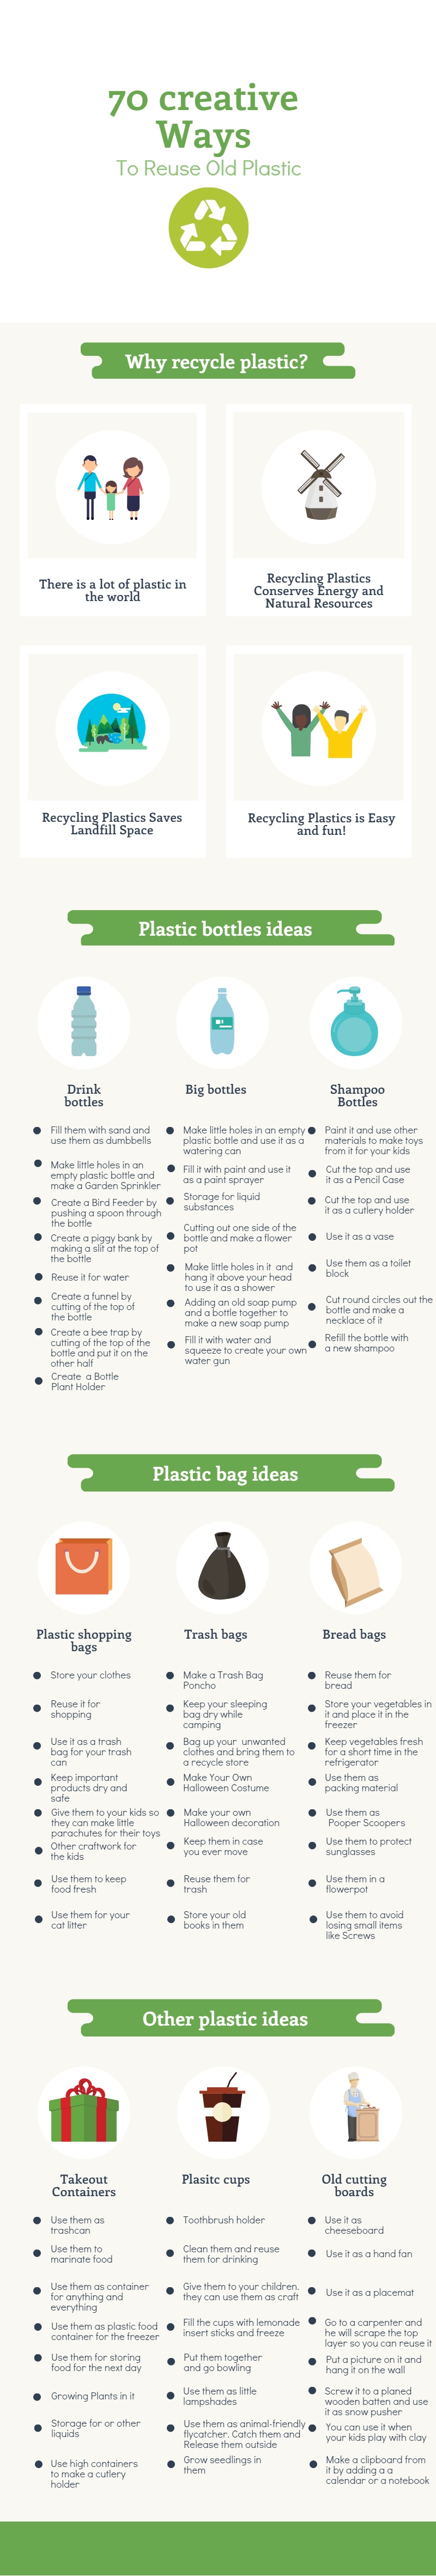 70 Ways To Reuse Plastic Infographic